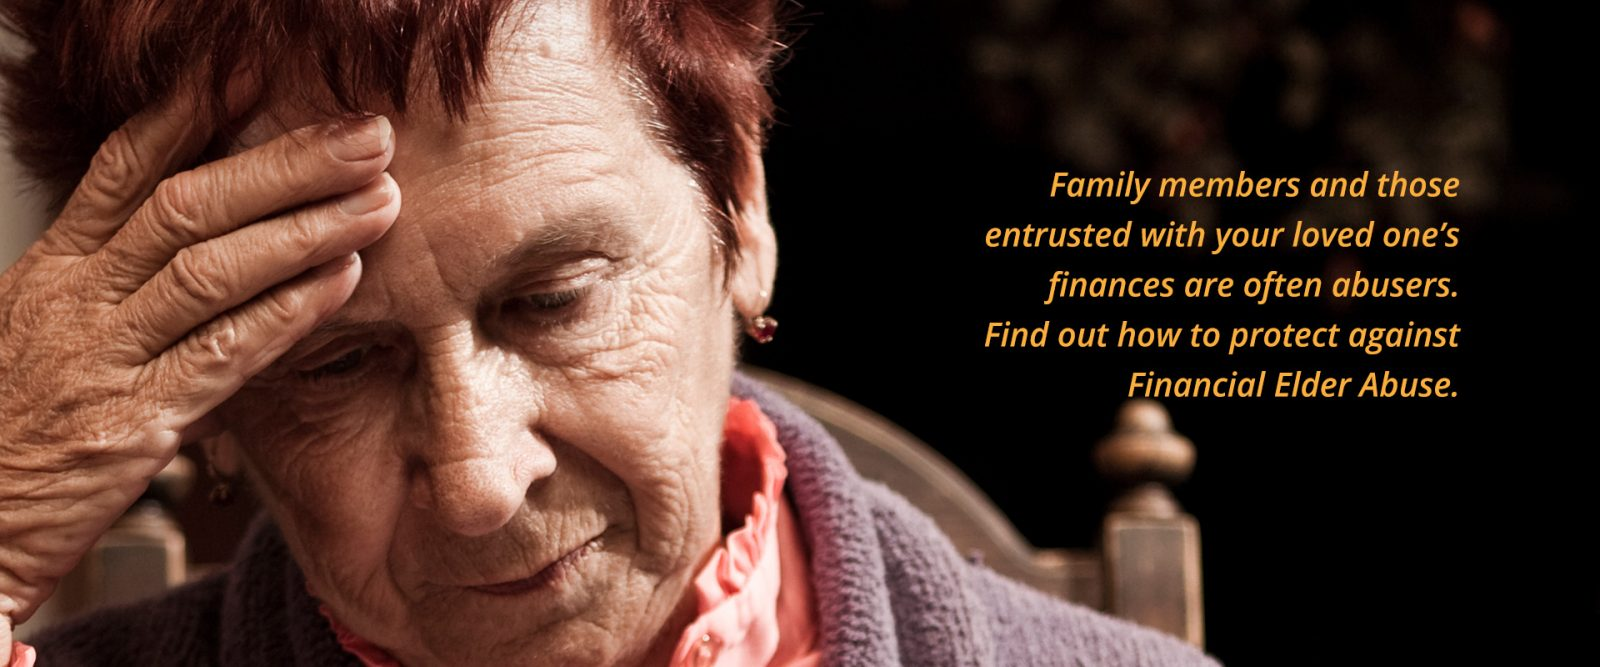 protect-against-Financial-Elder-Abuse